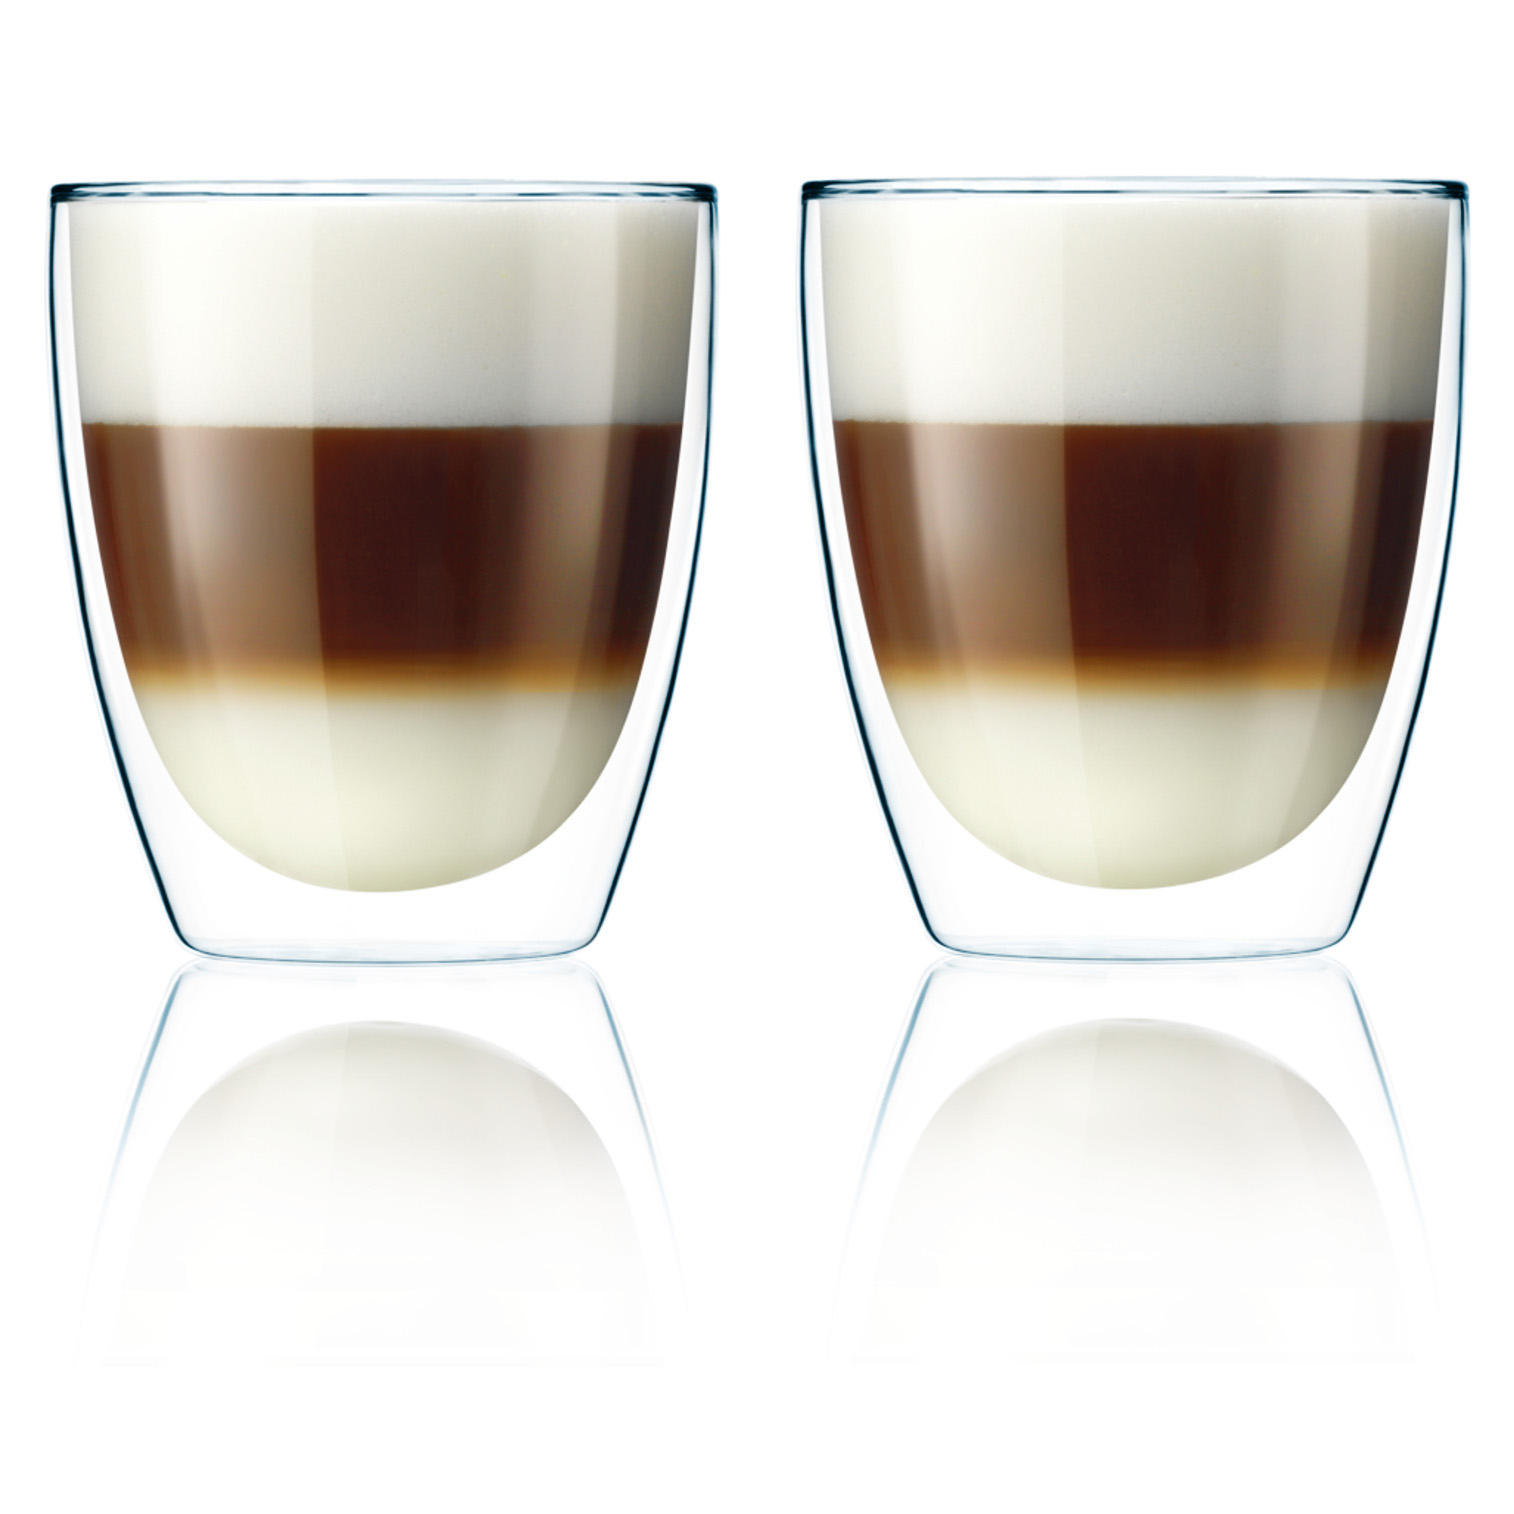 Philip Saeco Philips Saeco Coffee Glasses Hd7017 Cappuccino Pack Of 2 At About Tea De Shop